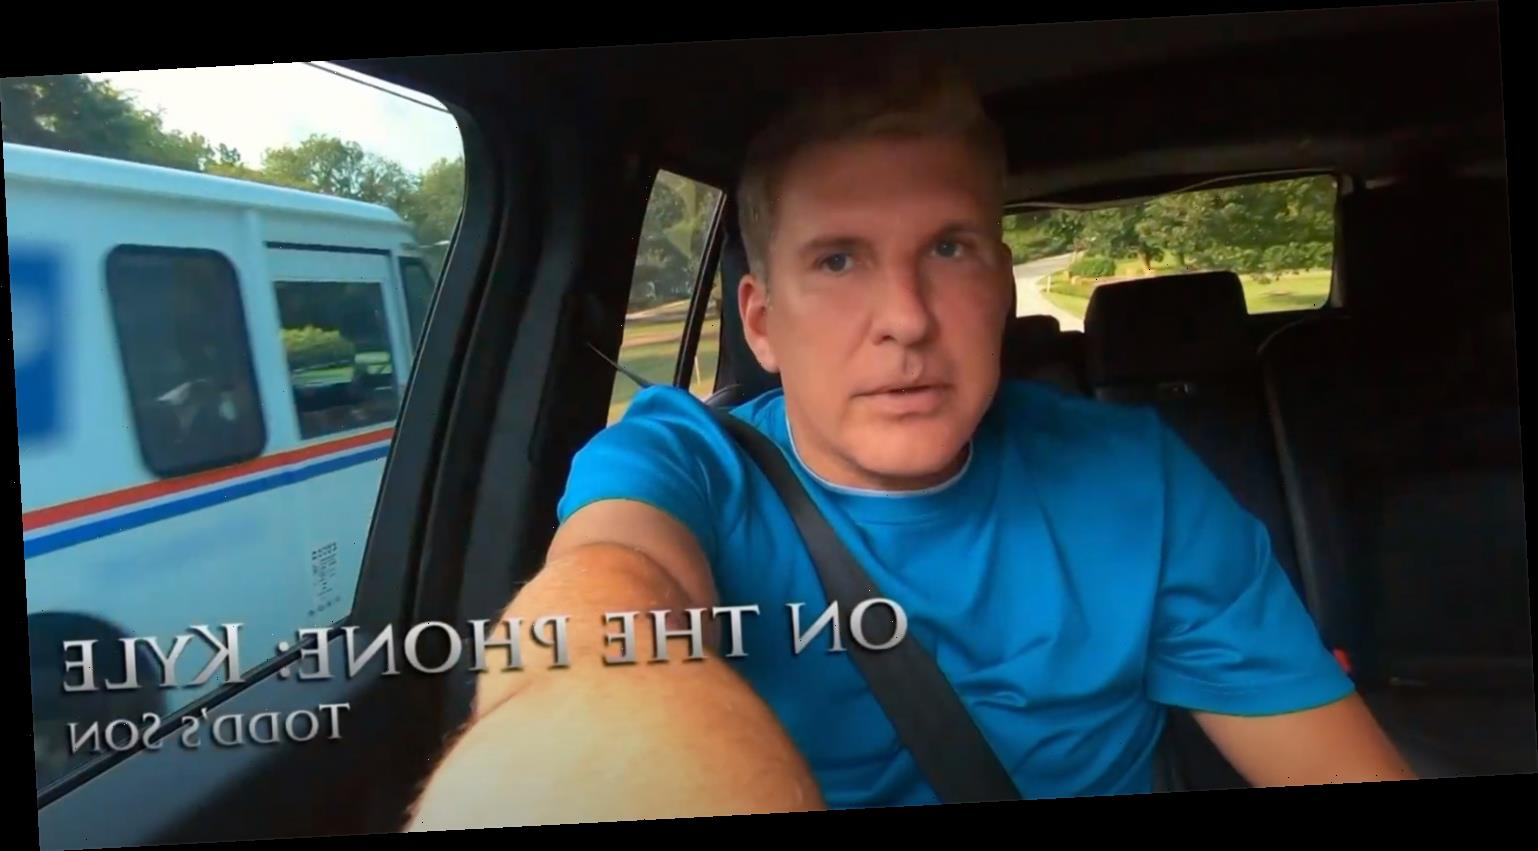 Chrisley Knows Best: Todd Chrisley Gets 'Very Emotional' as He Receives a Call from Eldest Son Kyle